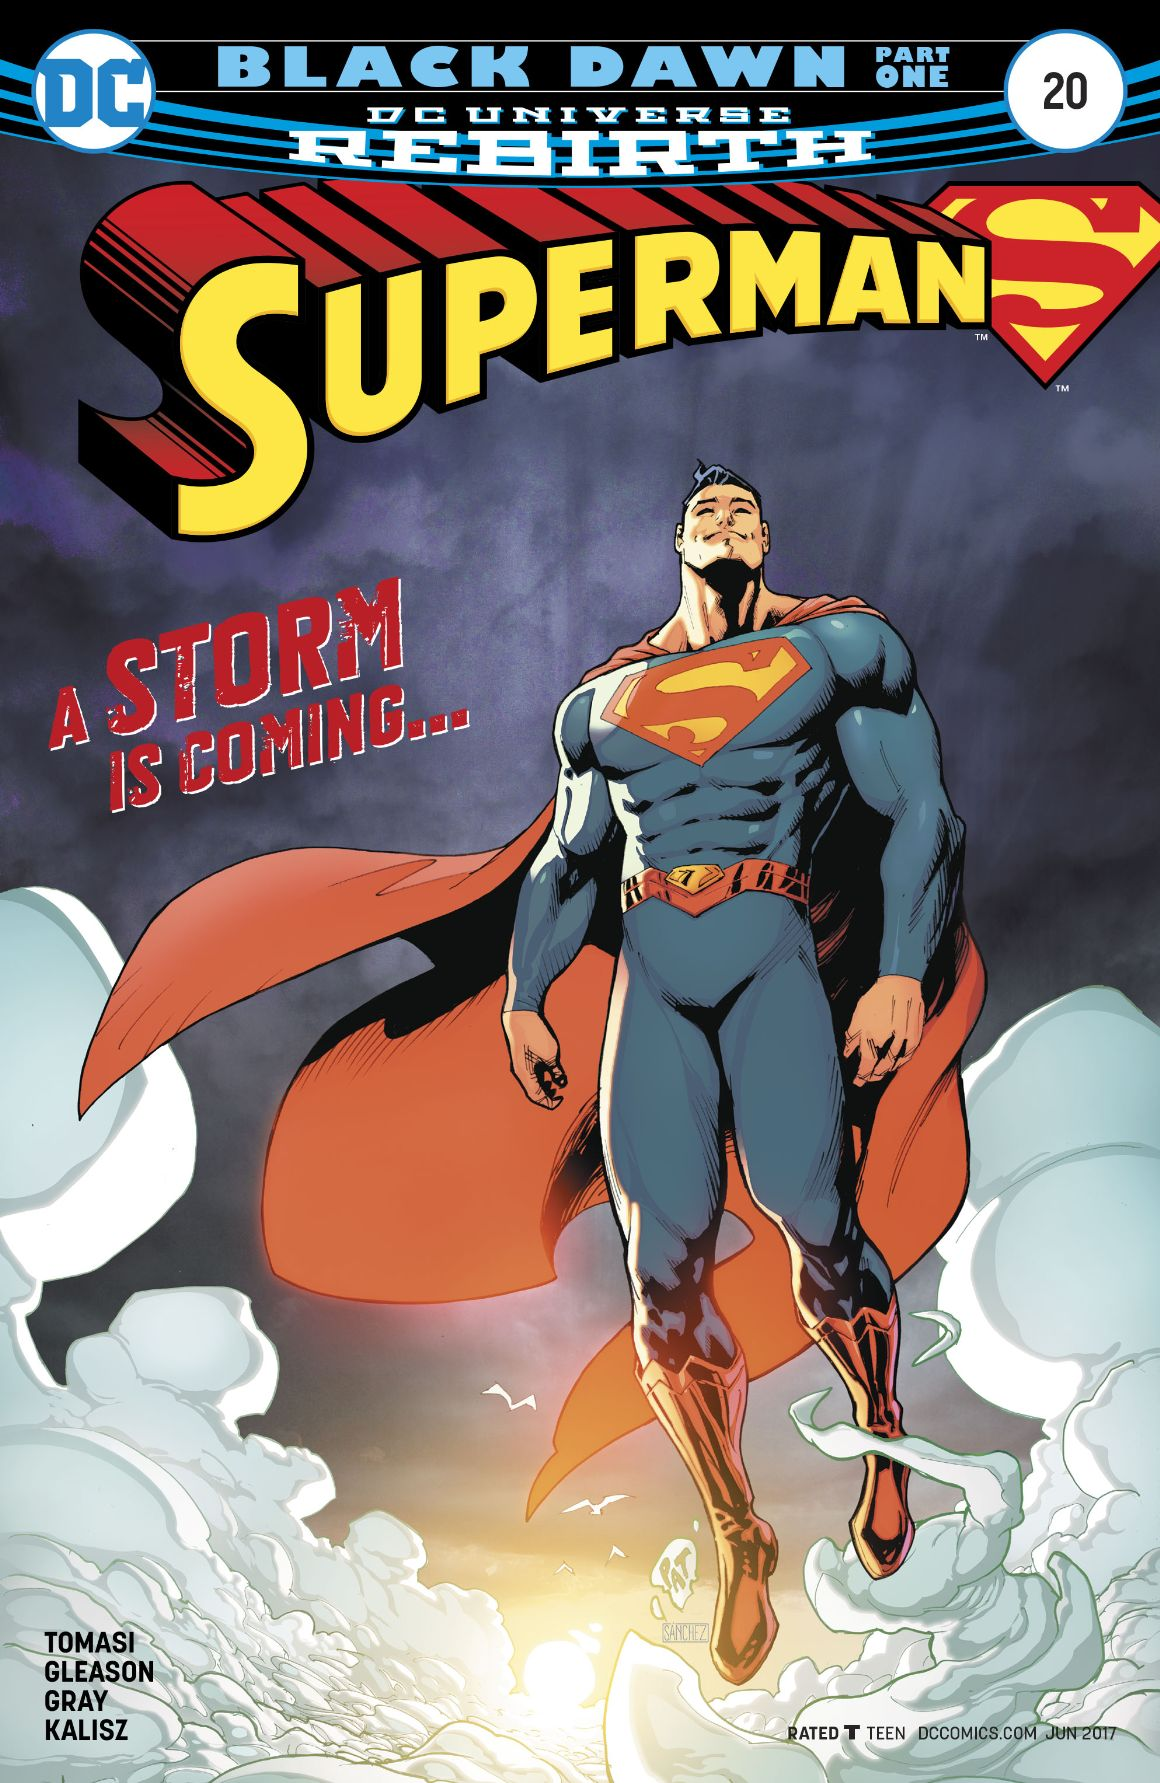 if you are a fan of iconic superman moments or just looking to jump into superman before we get into heavier plot lines you should definitely pick up this